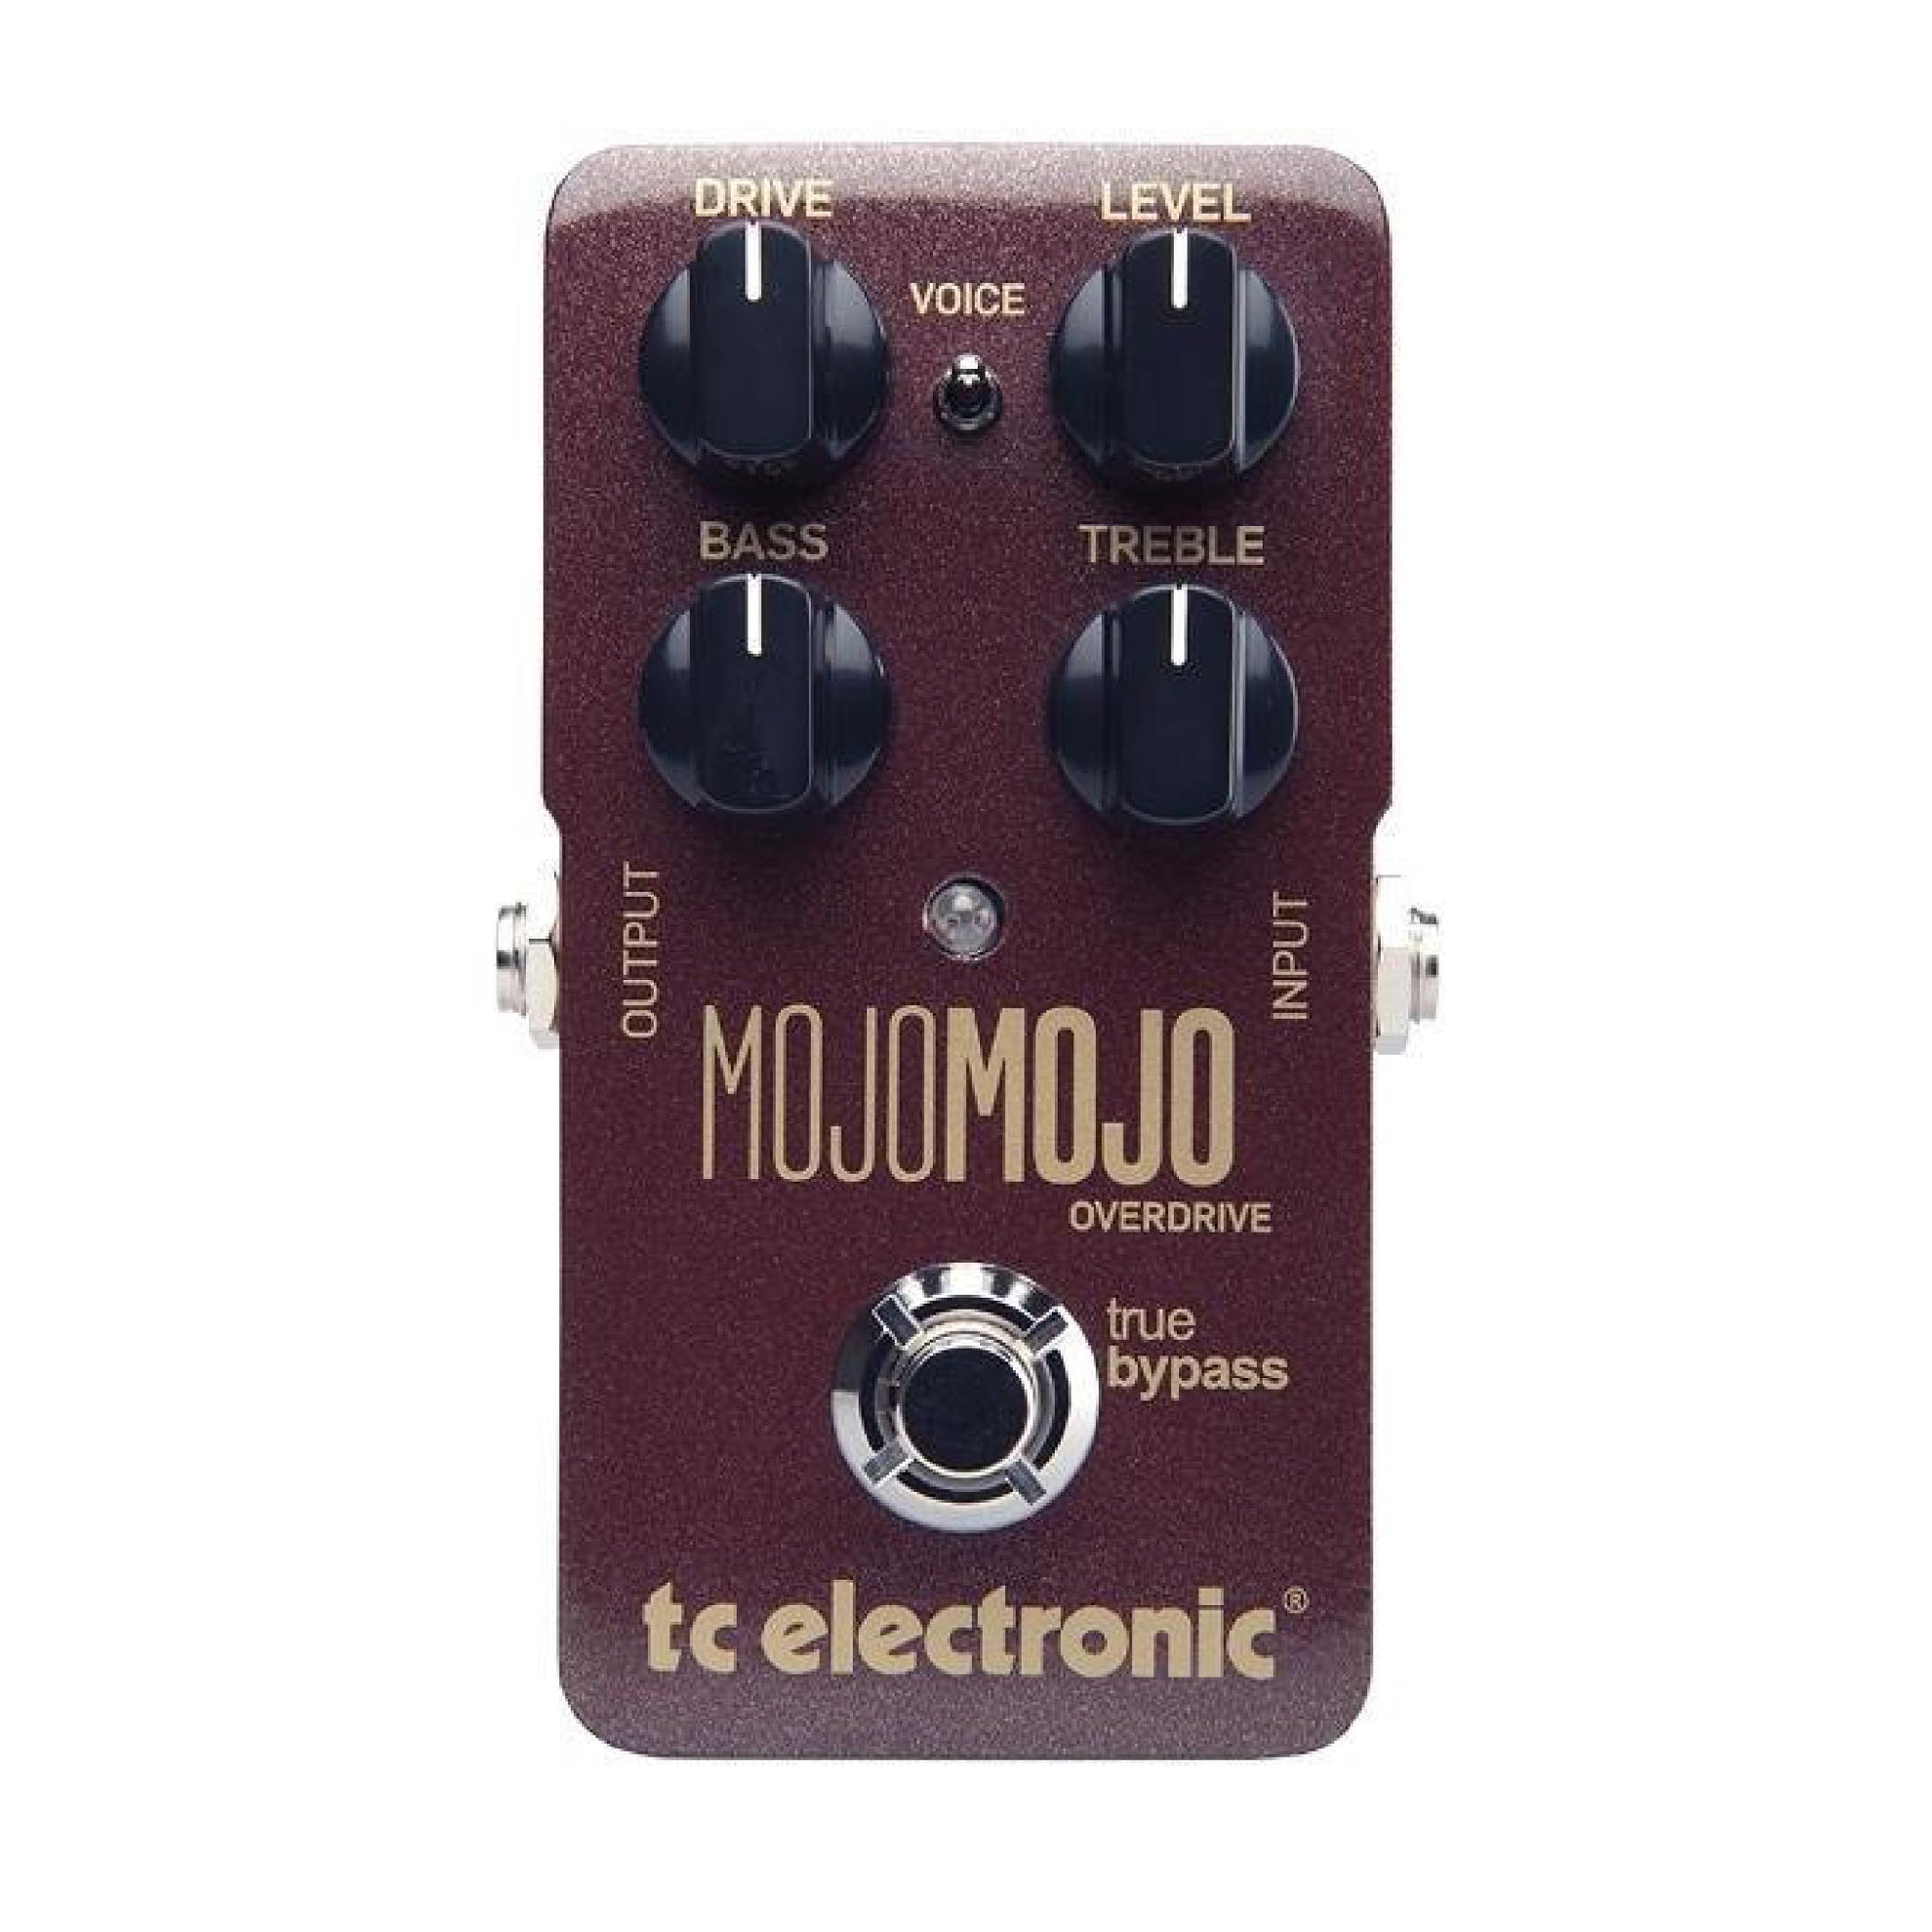 TC Electronic MojoMojo Overdrive Pedal (Pre-Order) - Gears For Ears